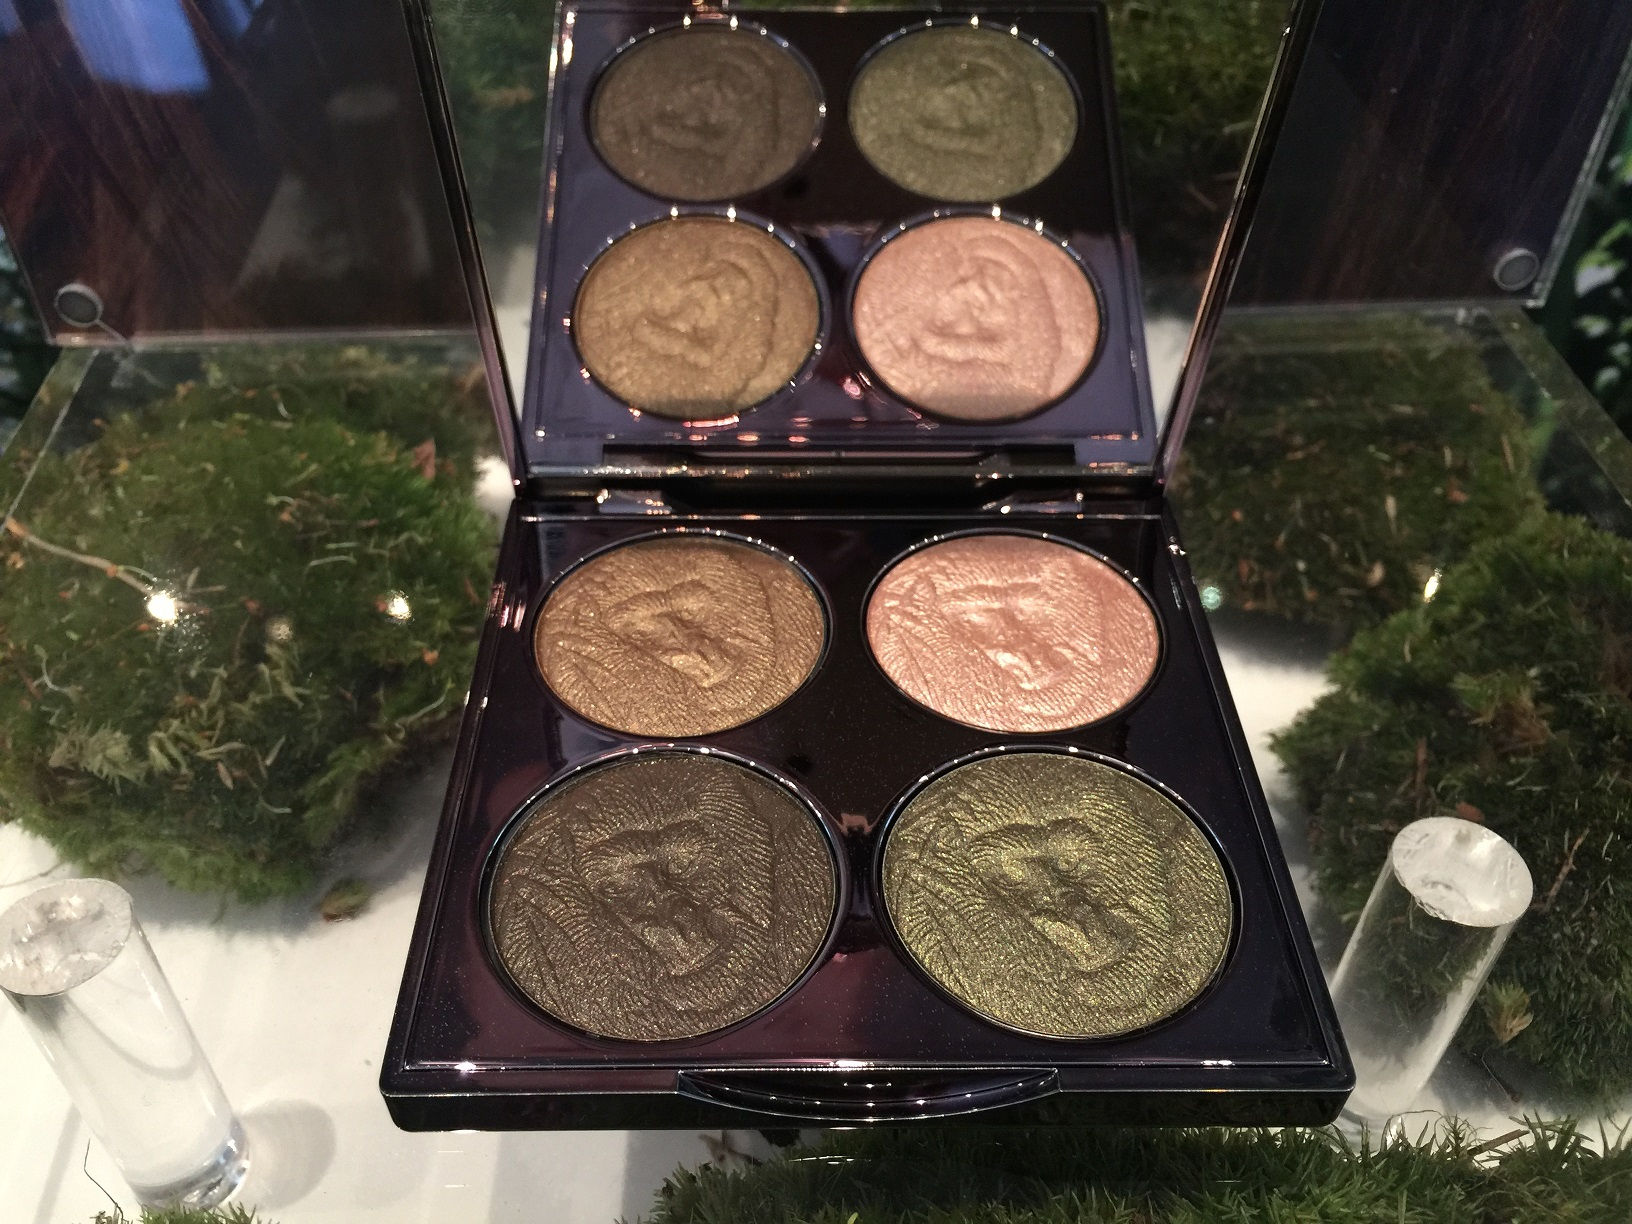 Chantecaille Fall 2017 Save The Forest Palette Swatches